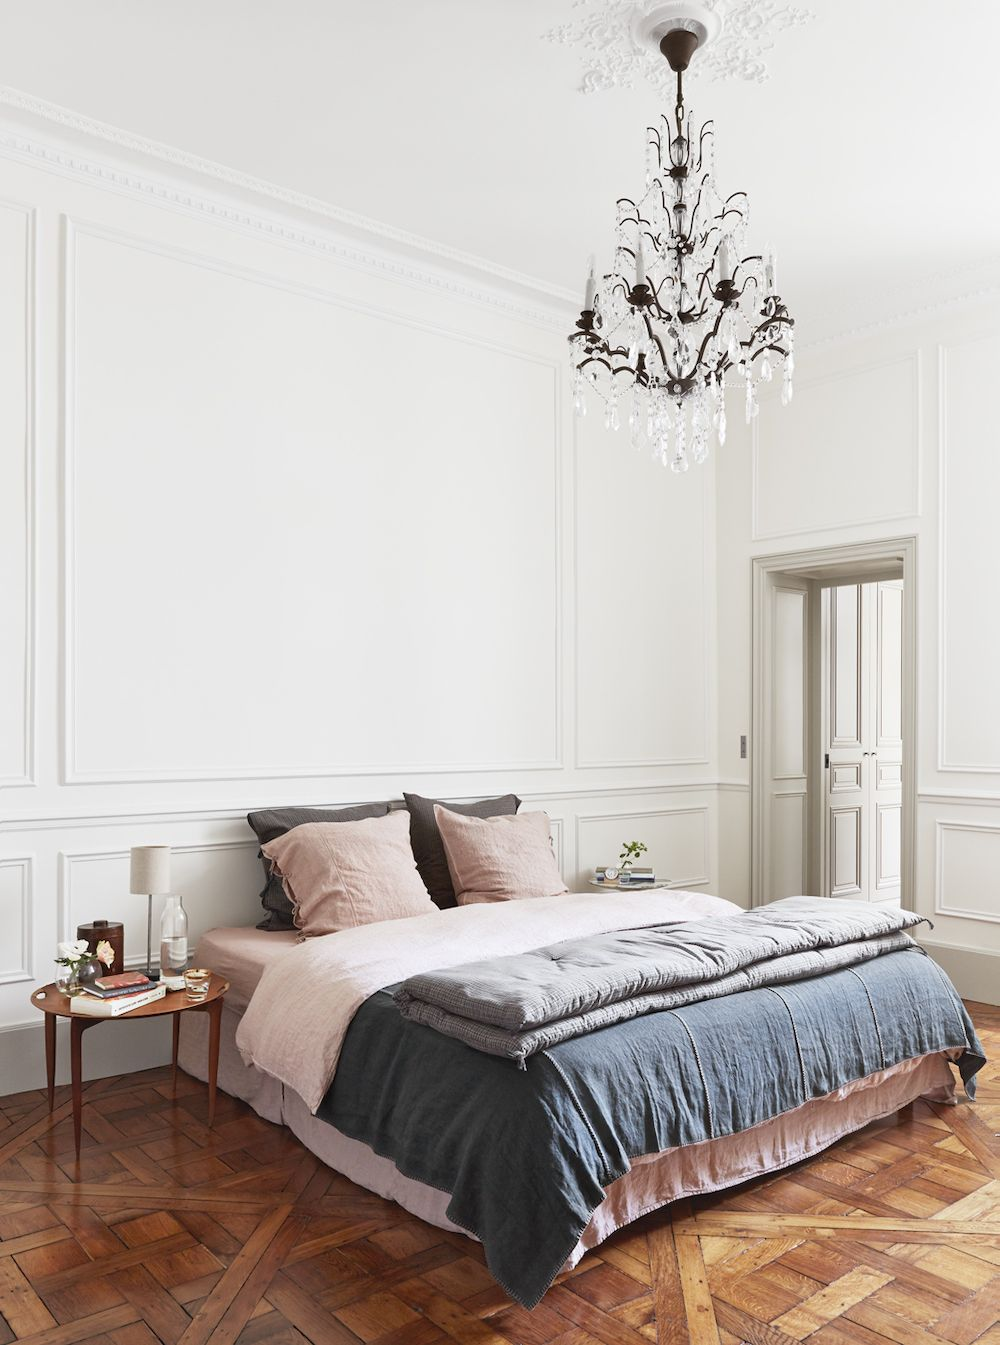 Parisian bedroom with faded linens and crystal chandelier via A + B Kasha